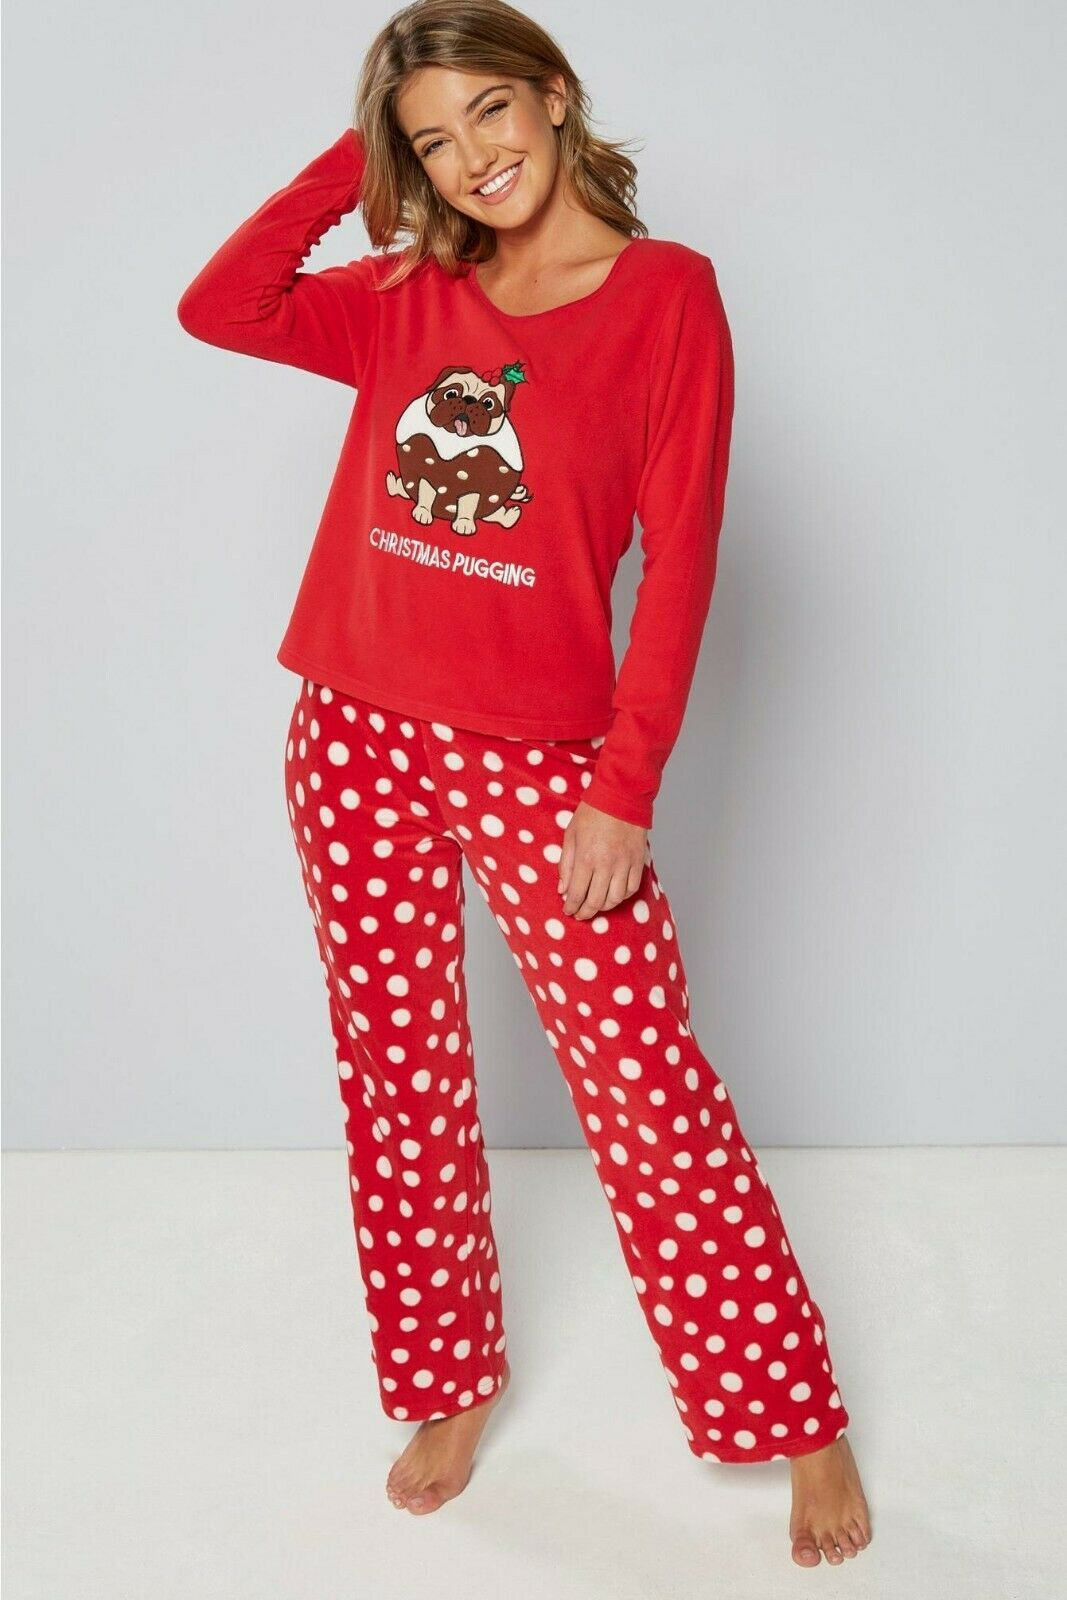 LADIES PUG CHRISTMAS PJS LIMITED STOCK! Available at www